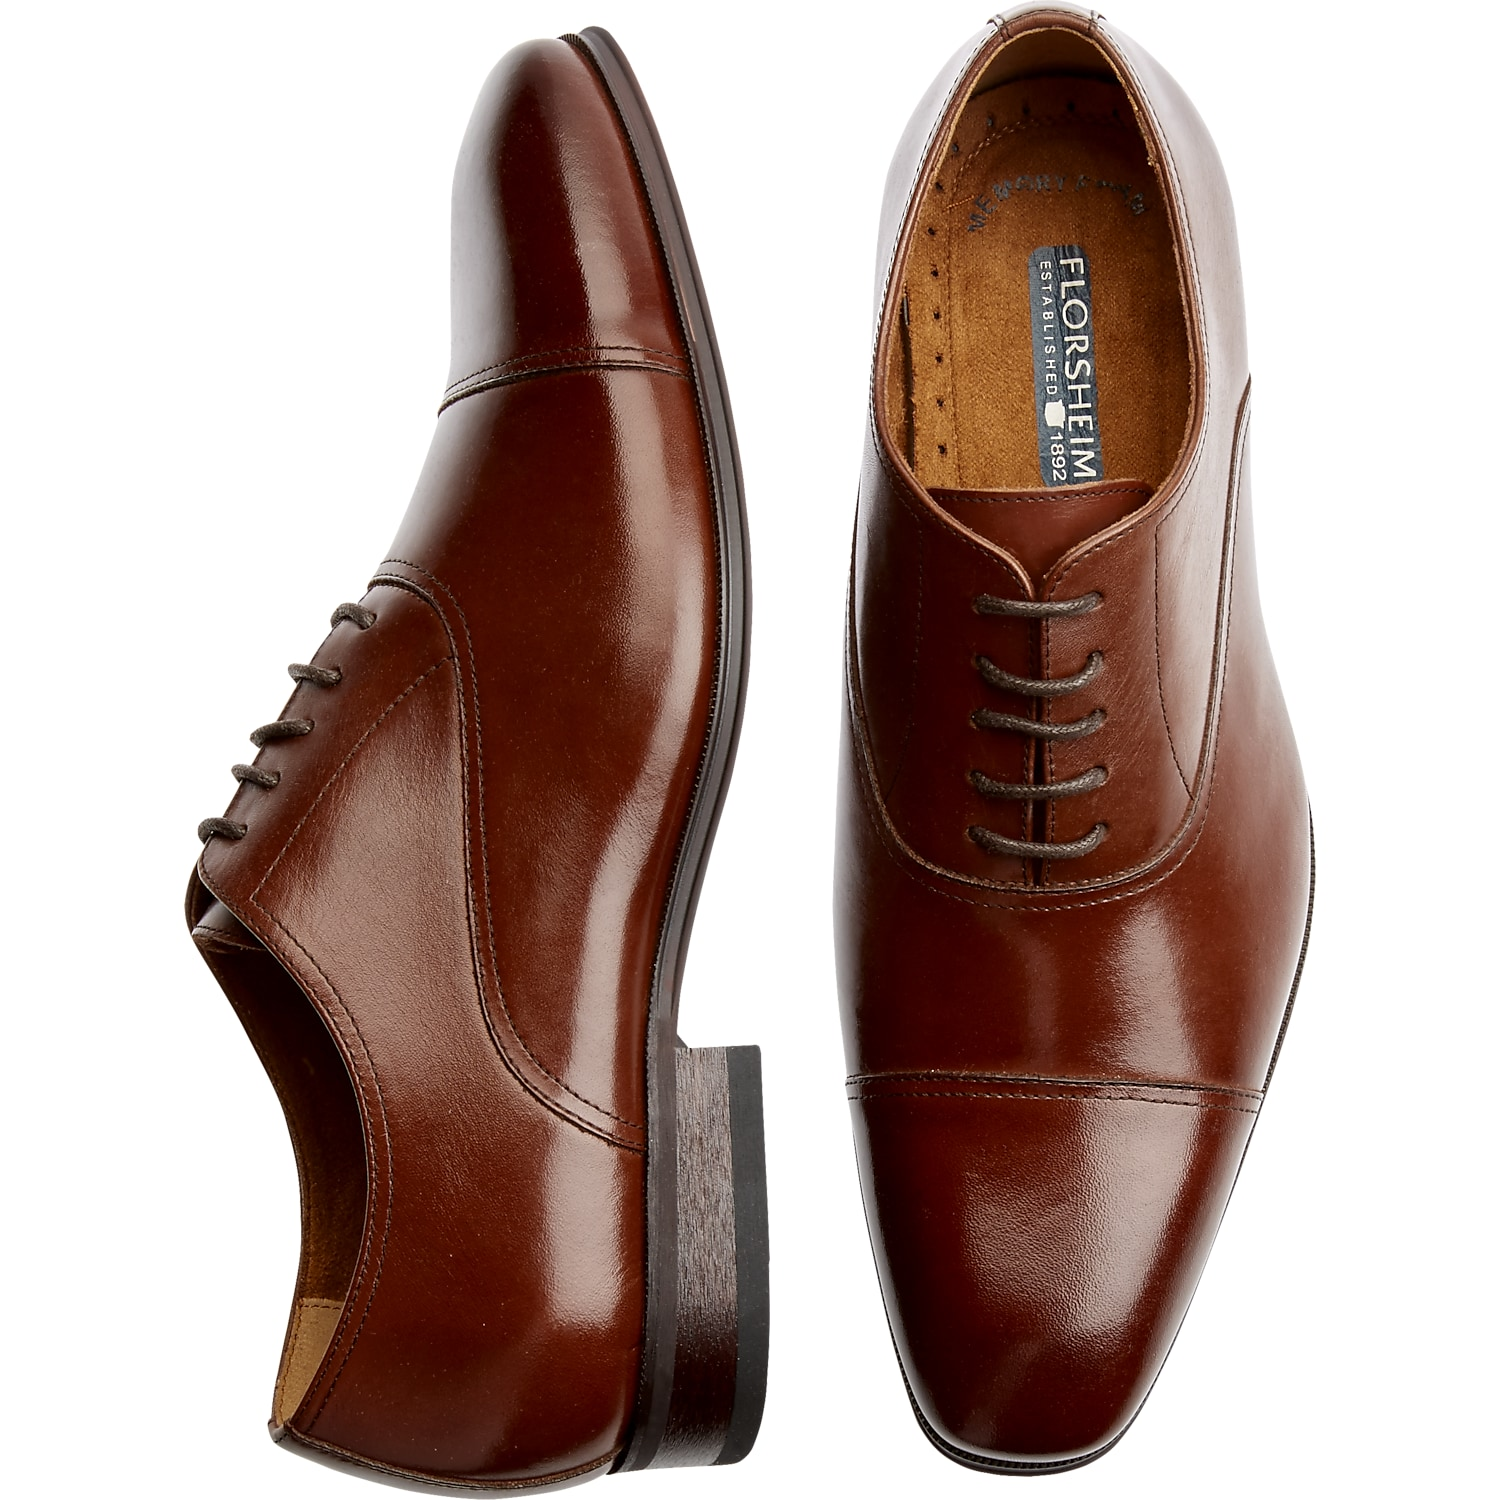 Mens Shoes - Florsheim Francisco Cognac Cap-Toe Oxfords - Men's Wearhouse